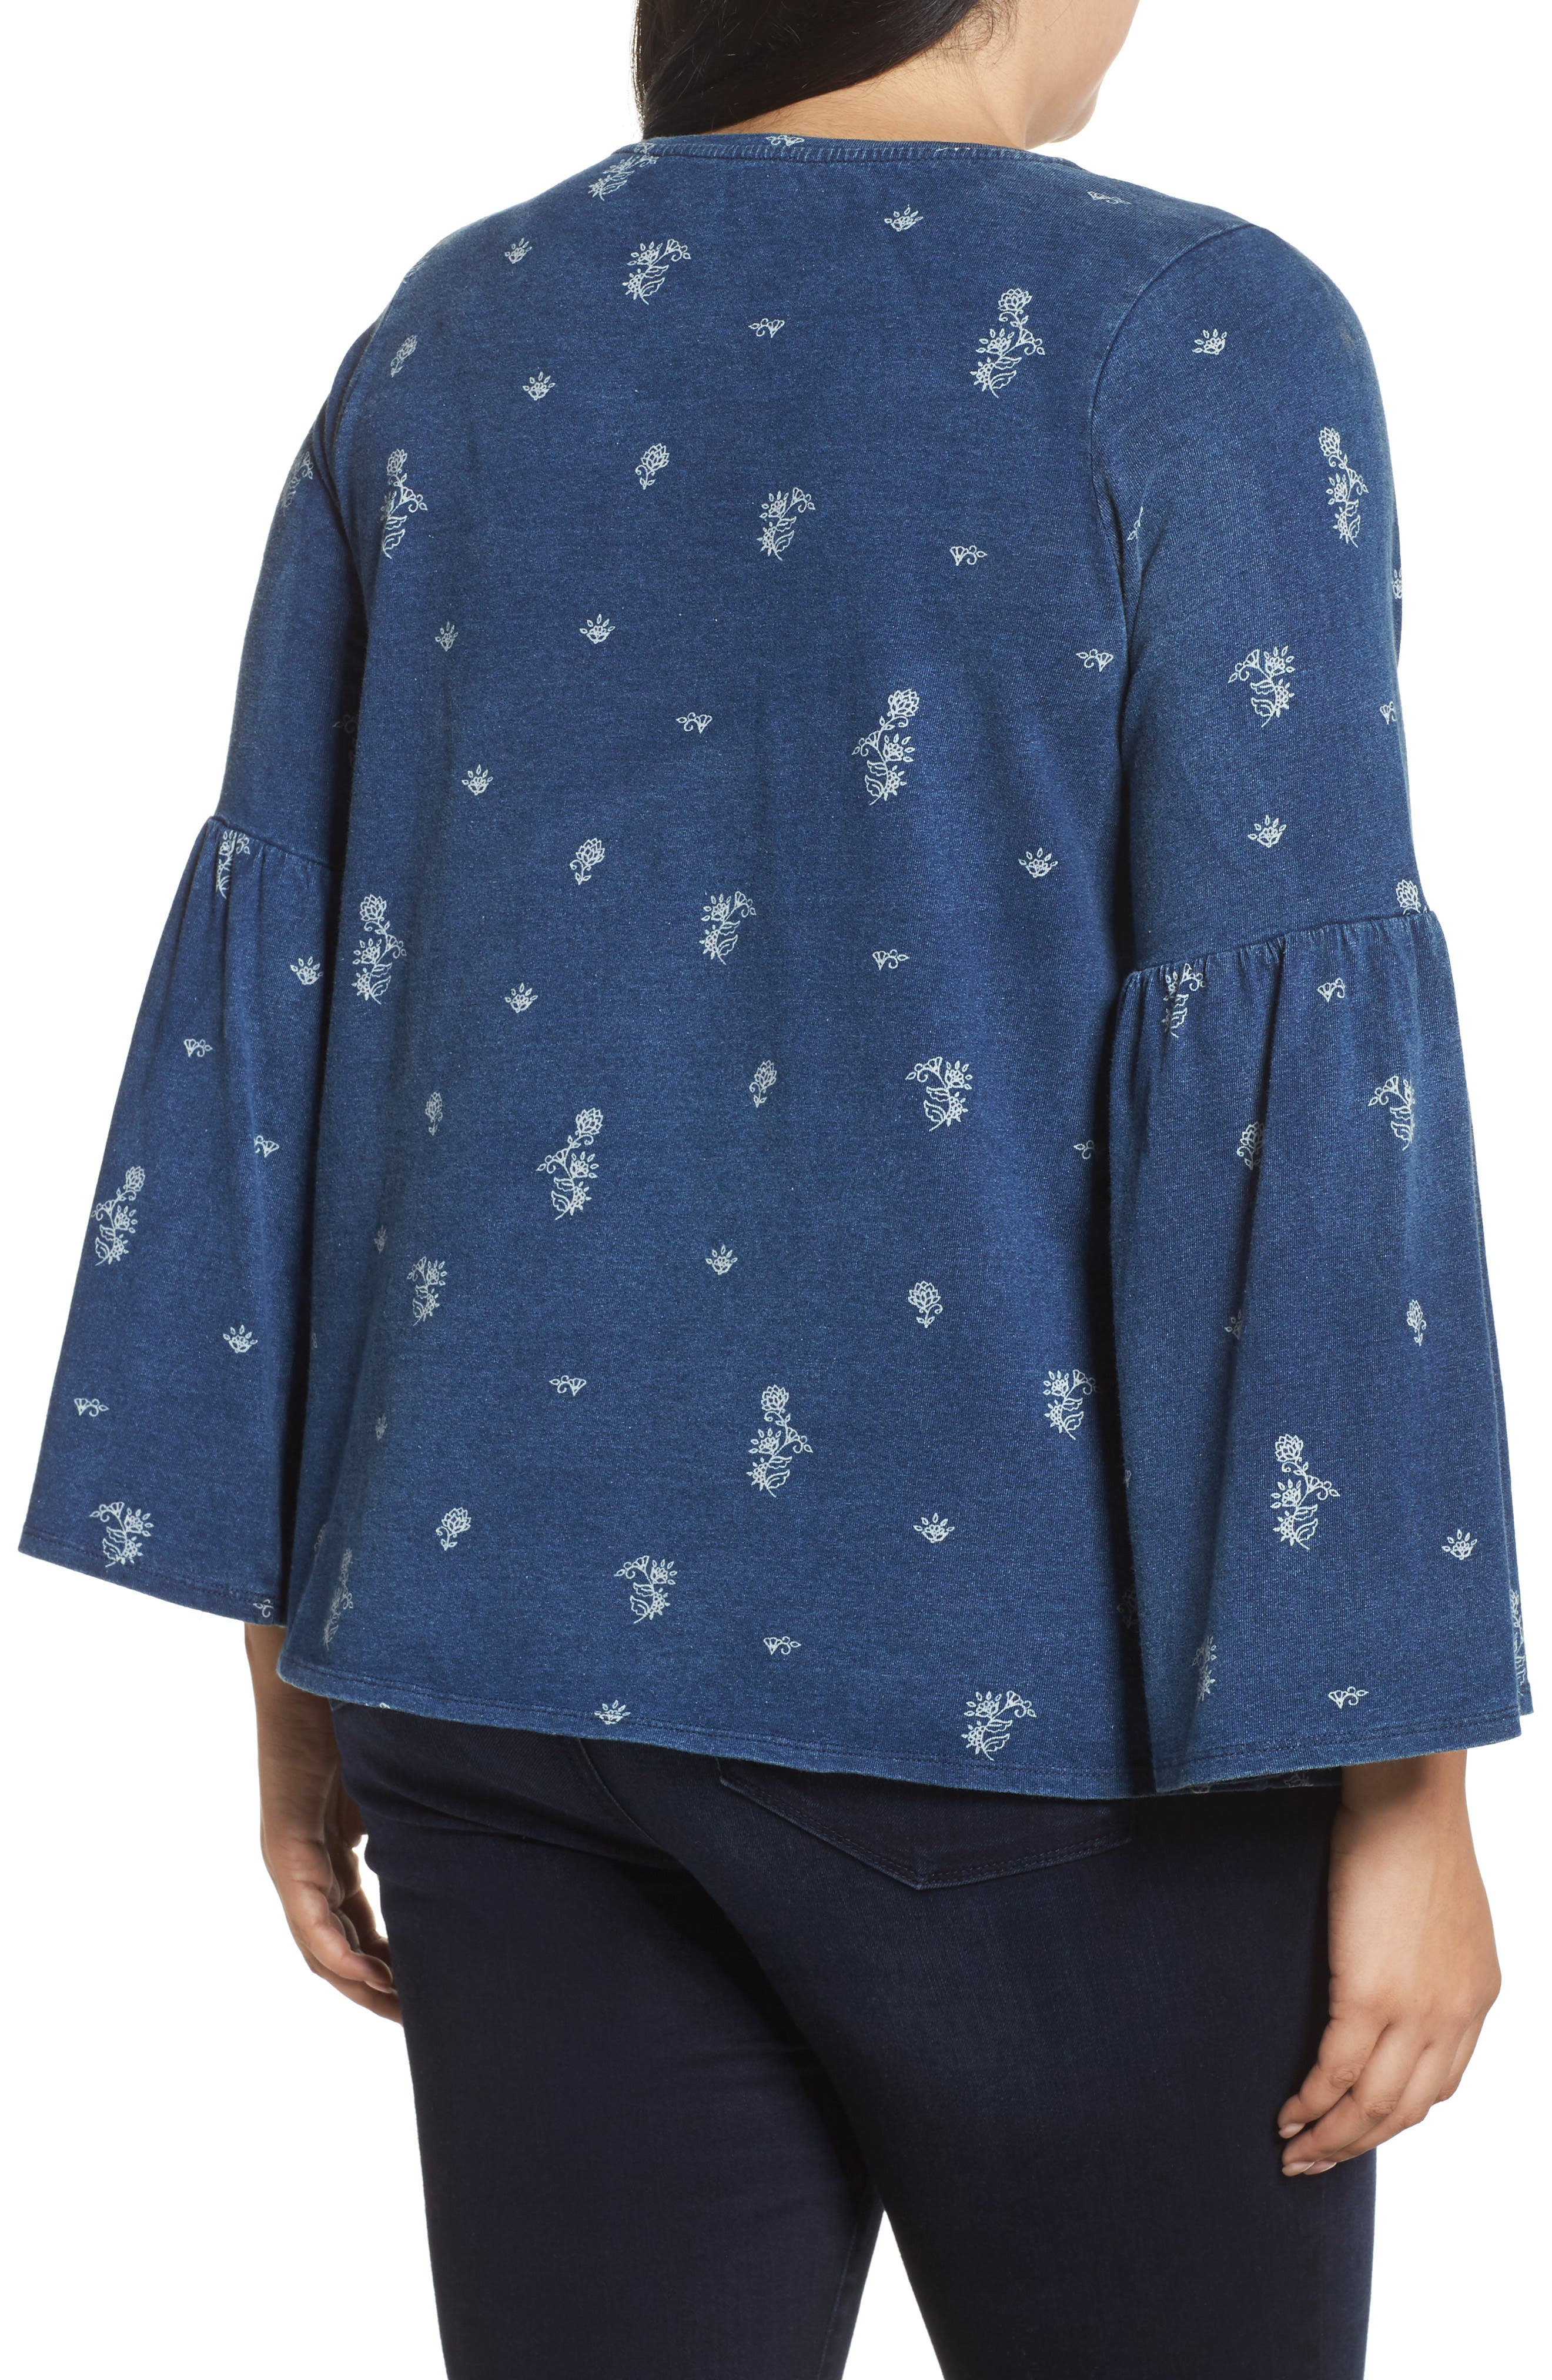 Ditzy Floral Print Bell Sleeve Top,                             Alternate thumbnail 2, color,                             TRUE INDIGO